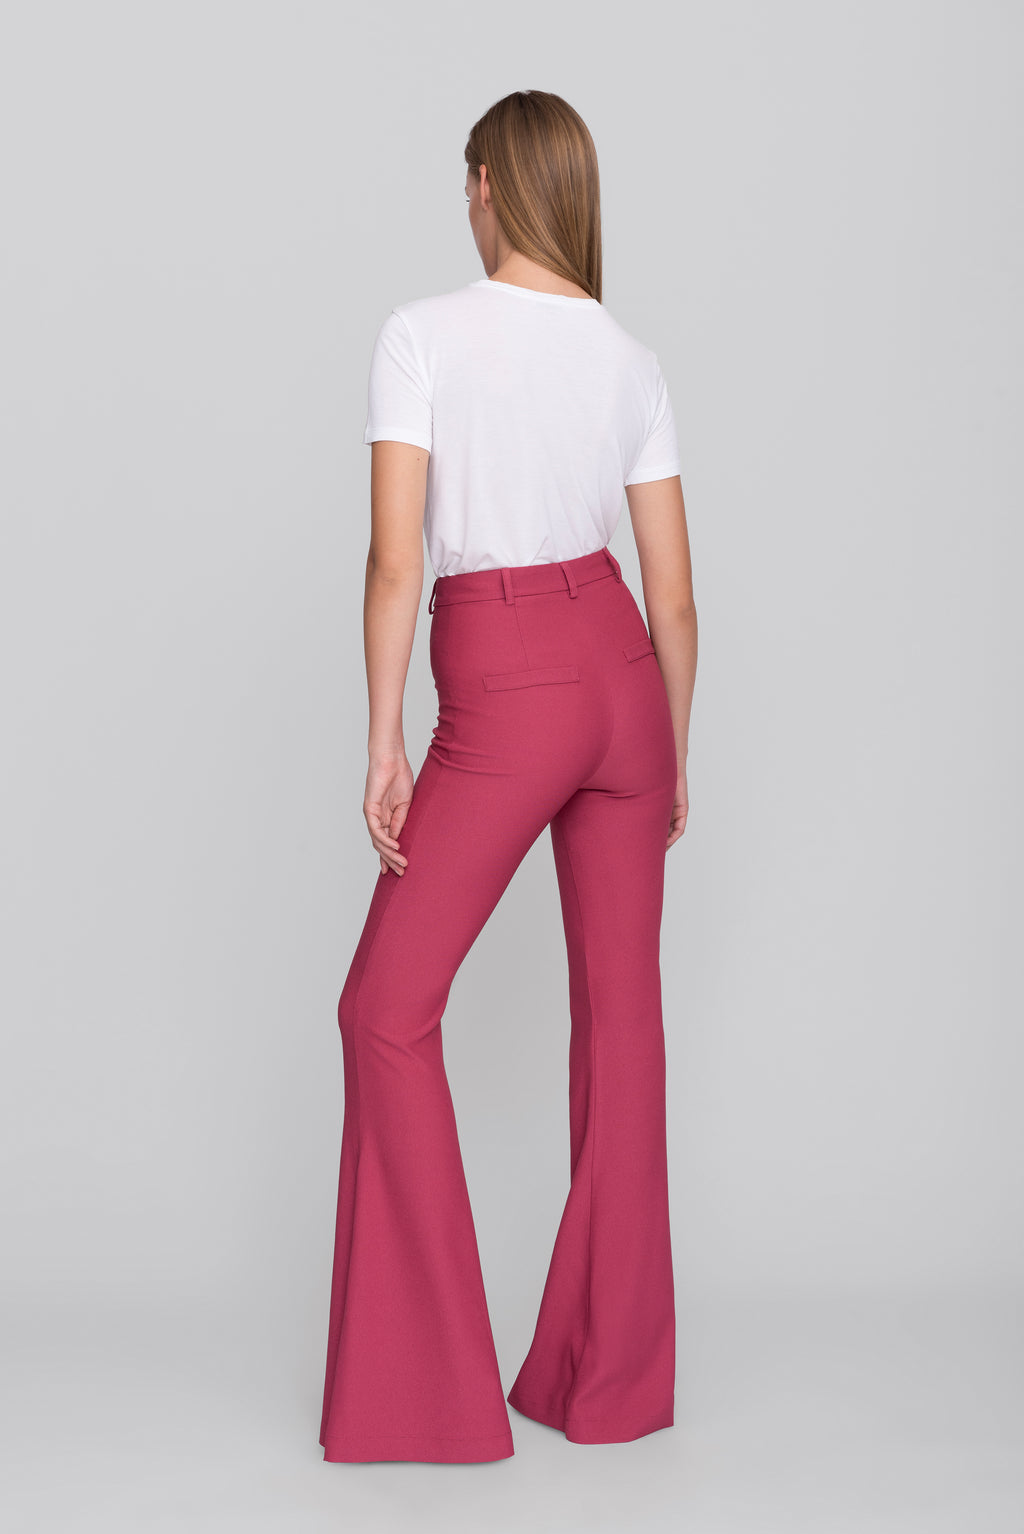 The Ruby Bianca Pants